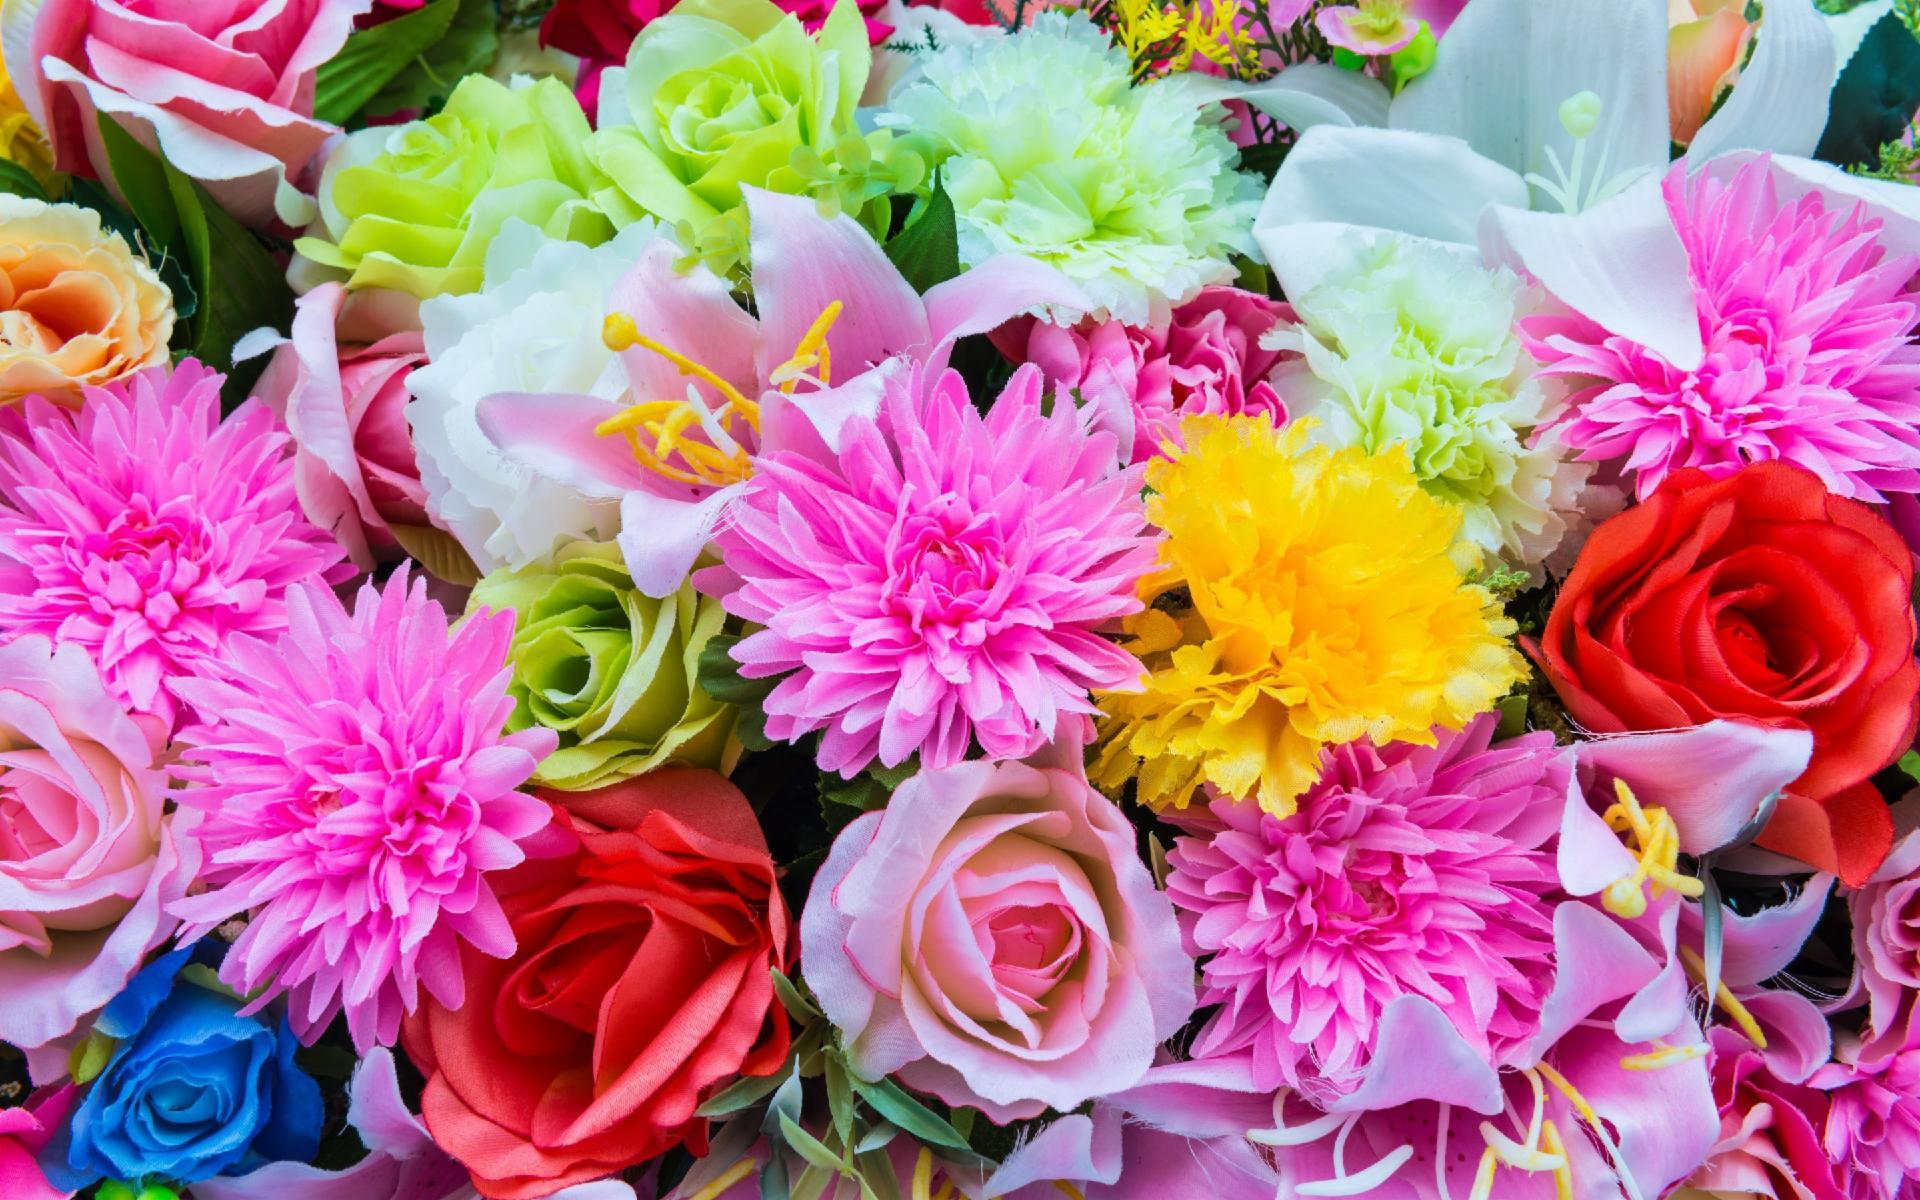 Which of these flowers do you think are prettiest? (google any that you are unfamiliar with)